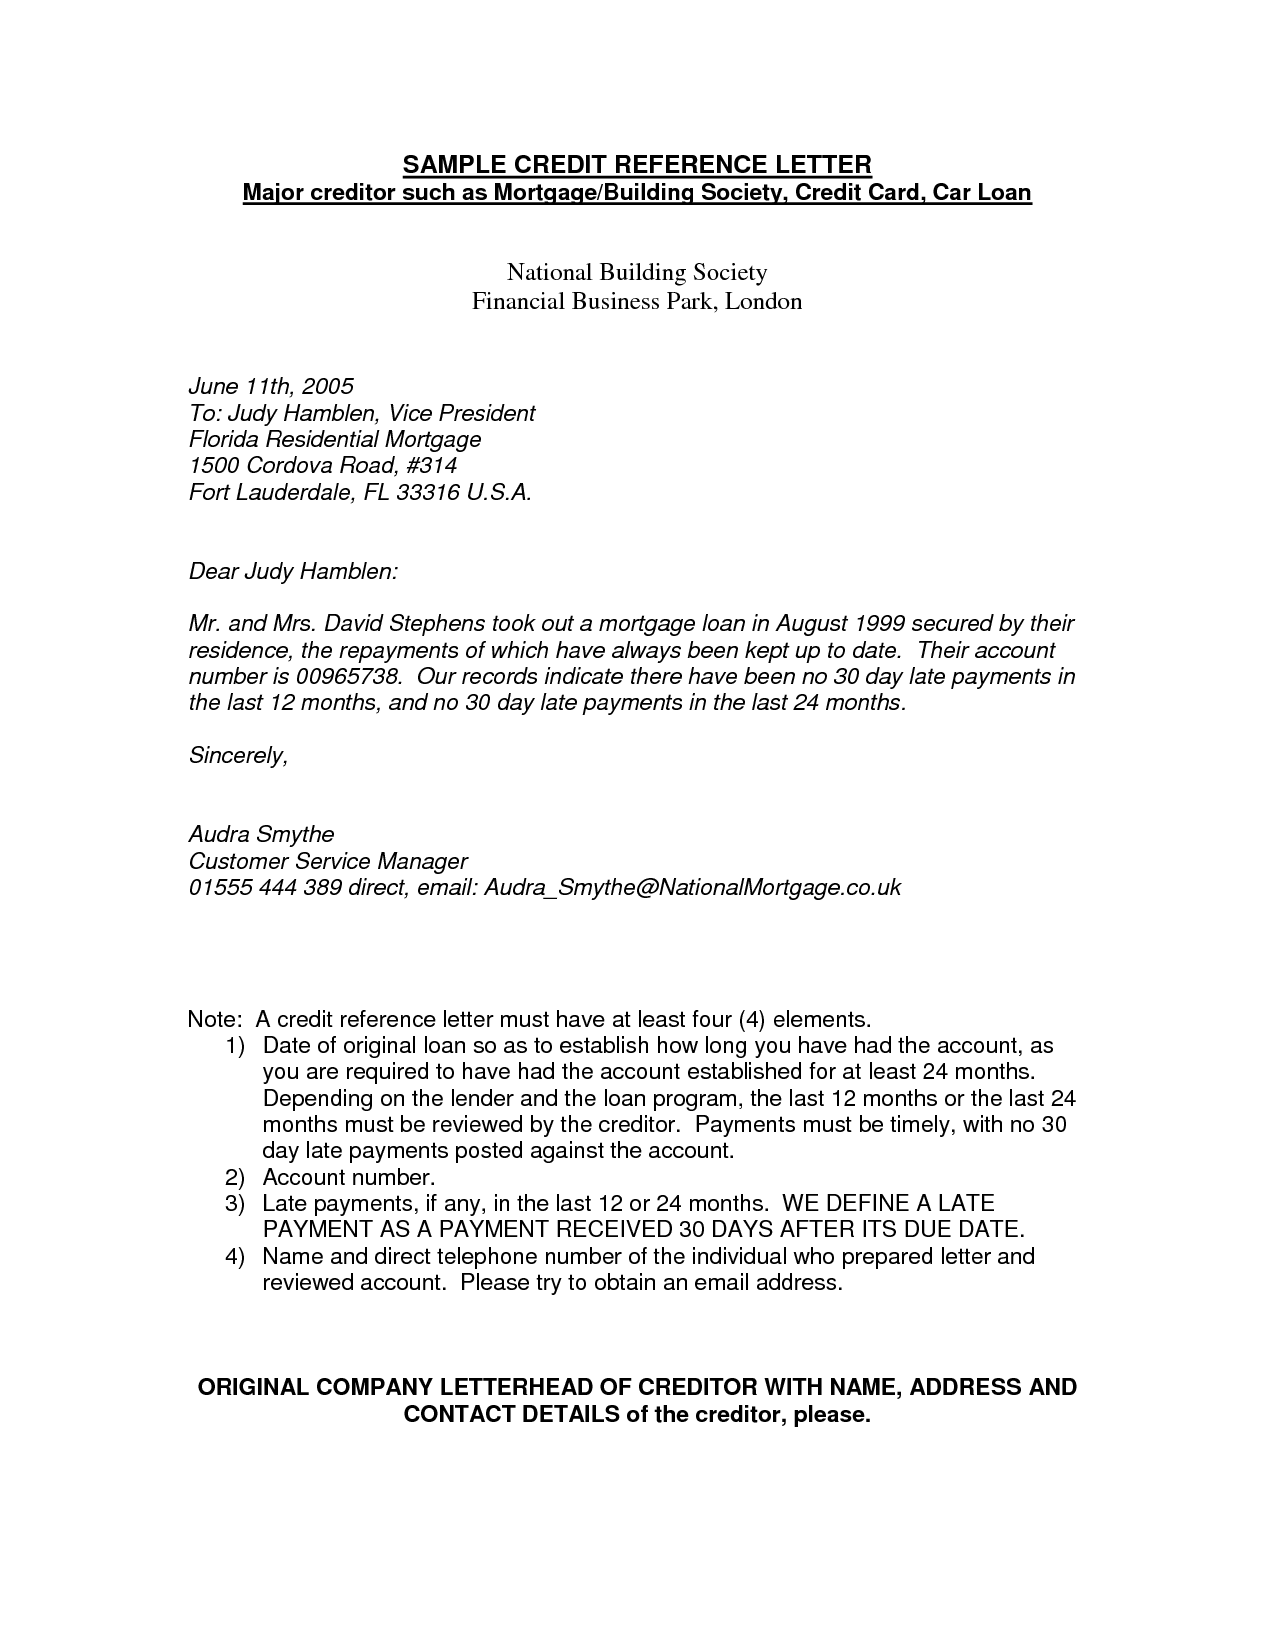 request reference letter kays makehauk co